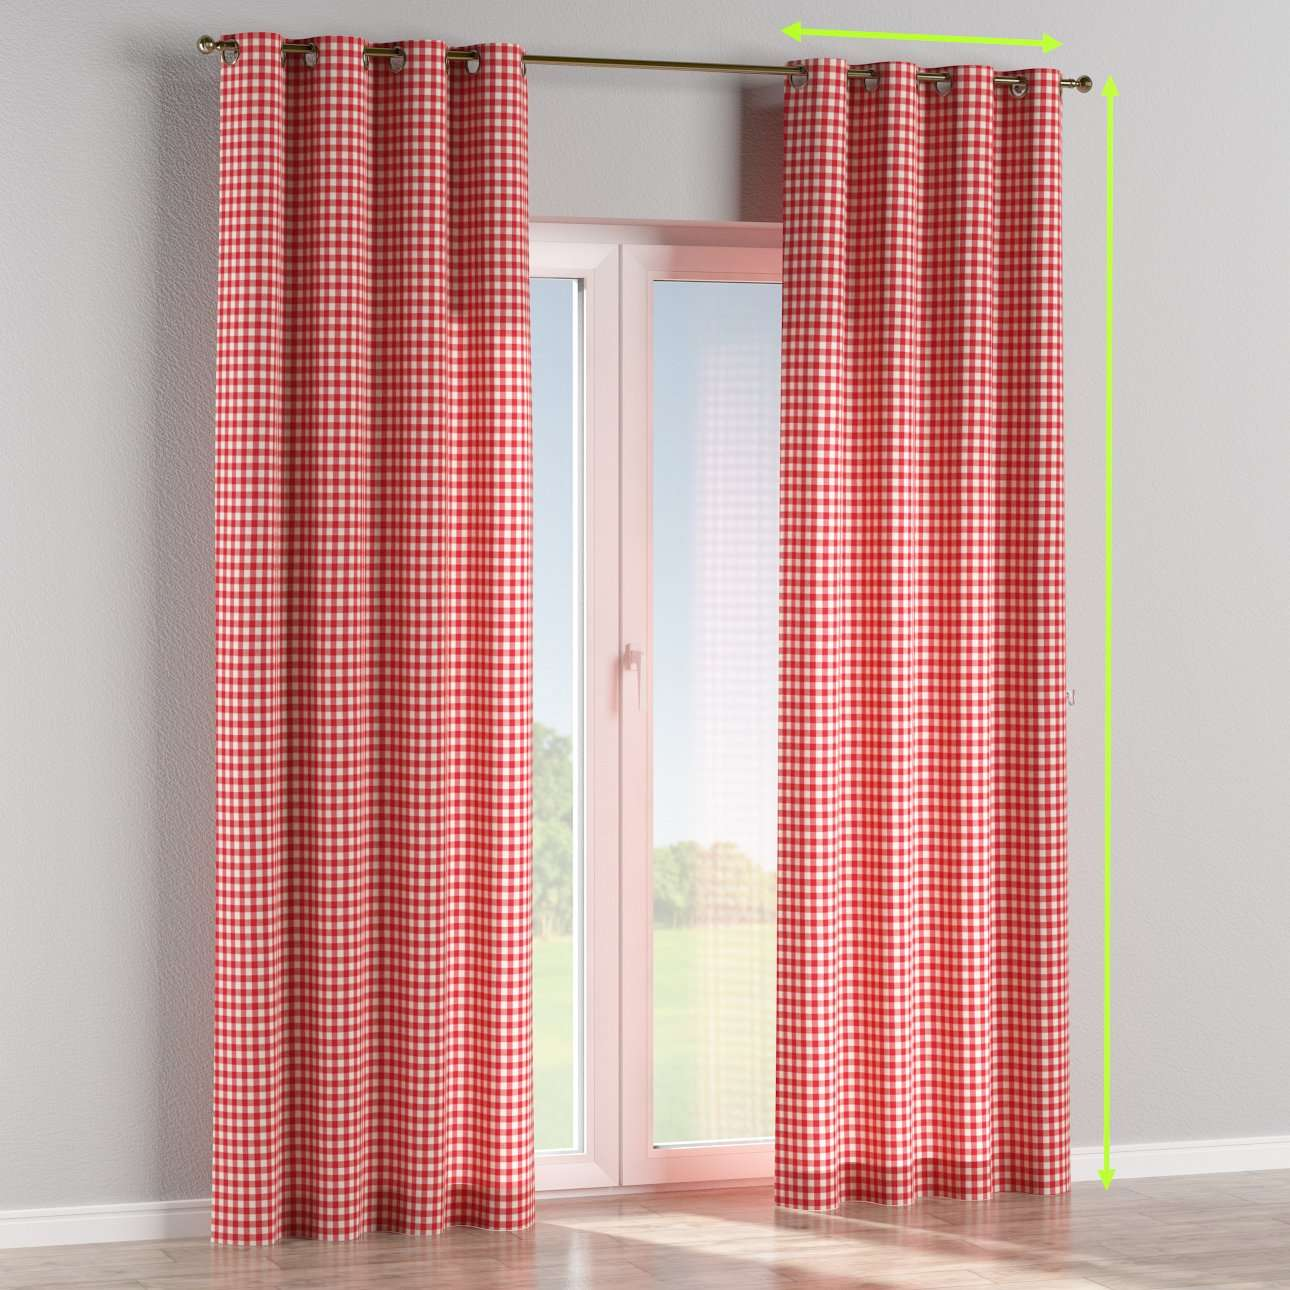 Eyelet lined curtains in collection Quadro, fabric: 136-16